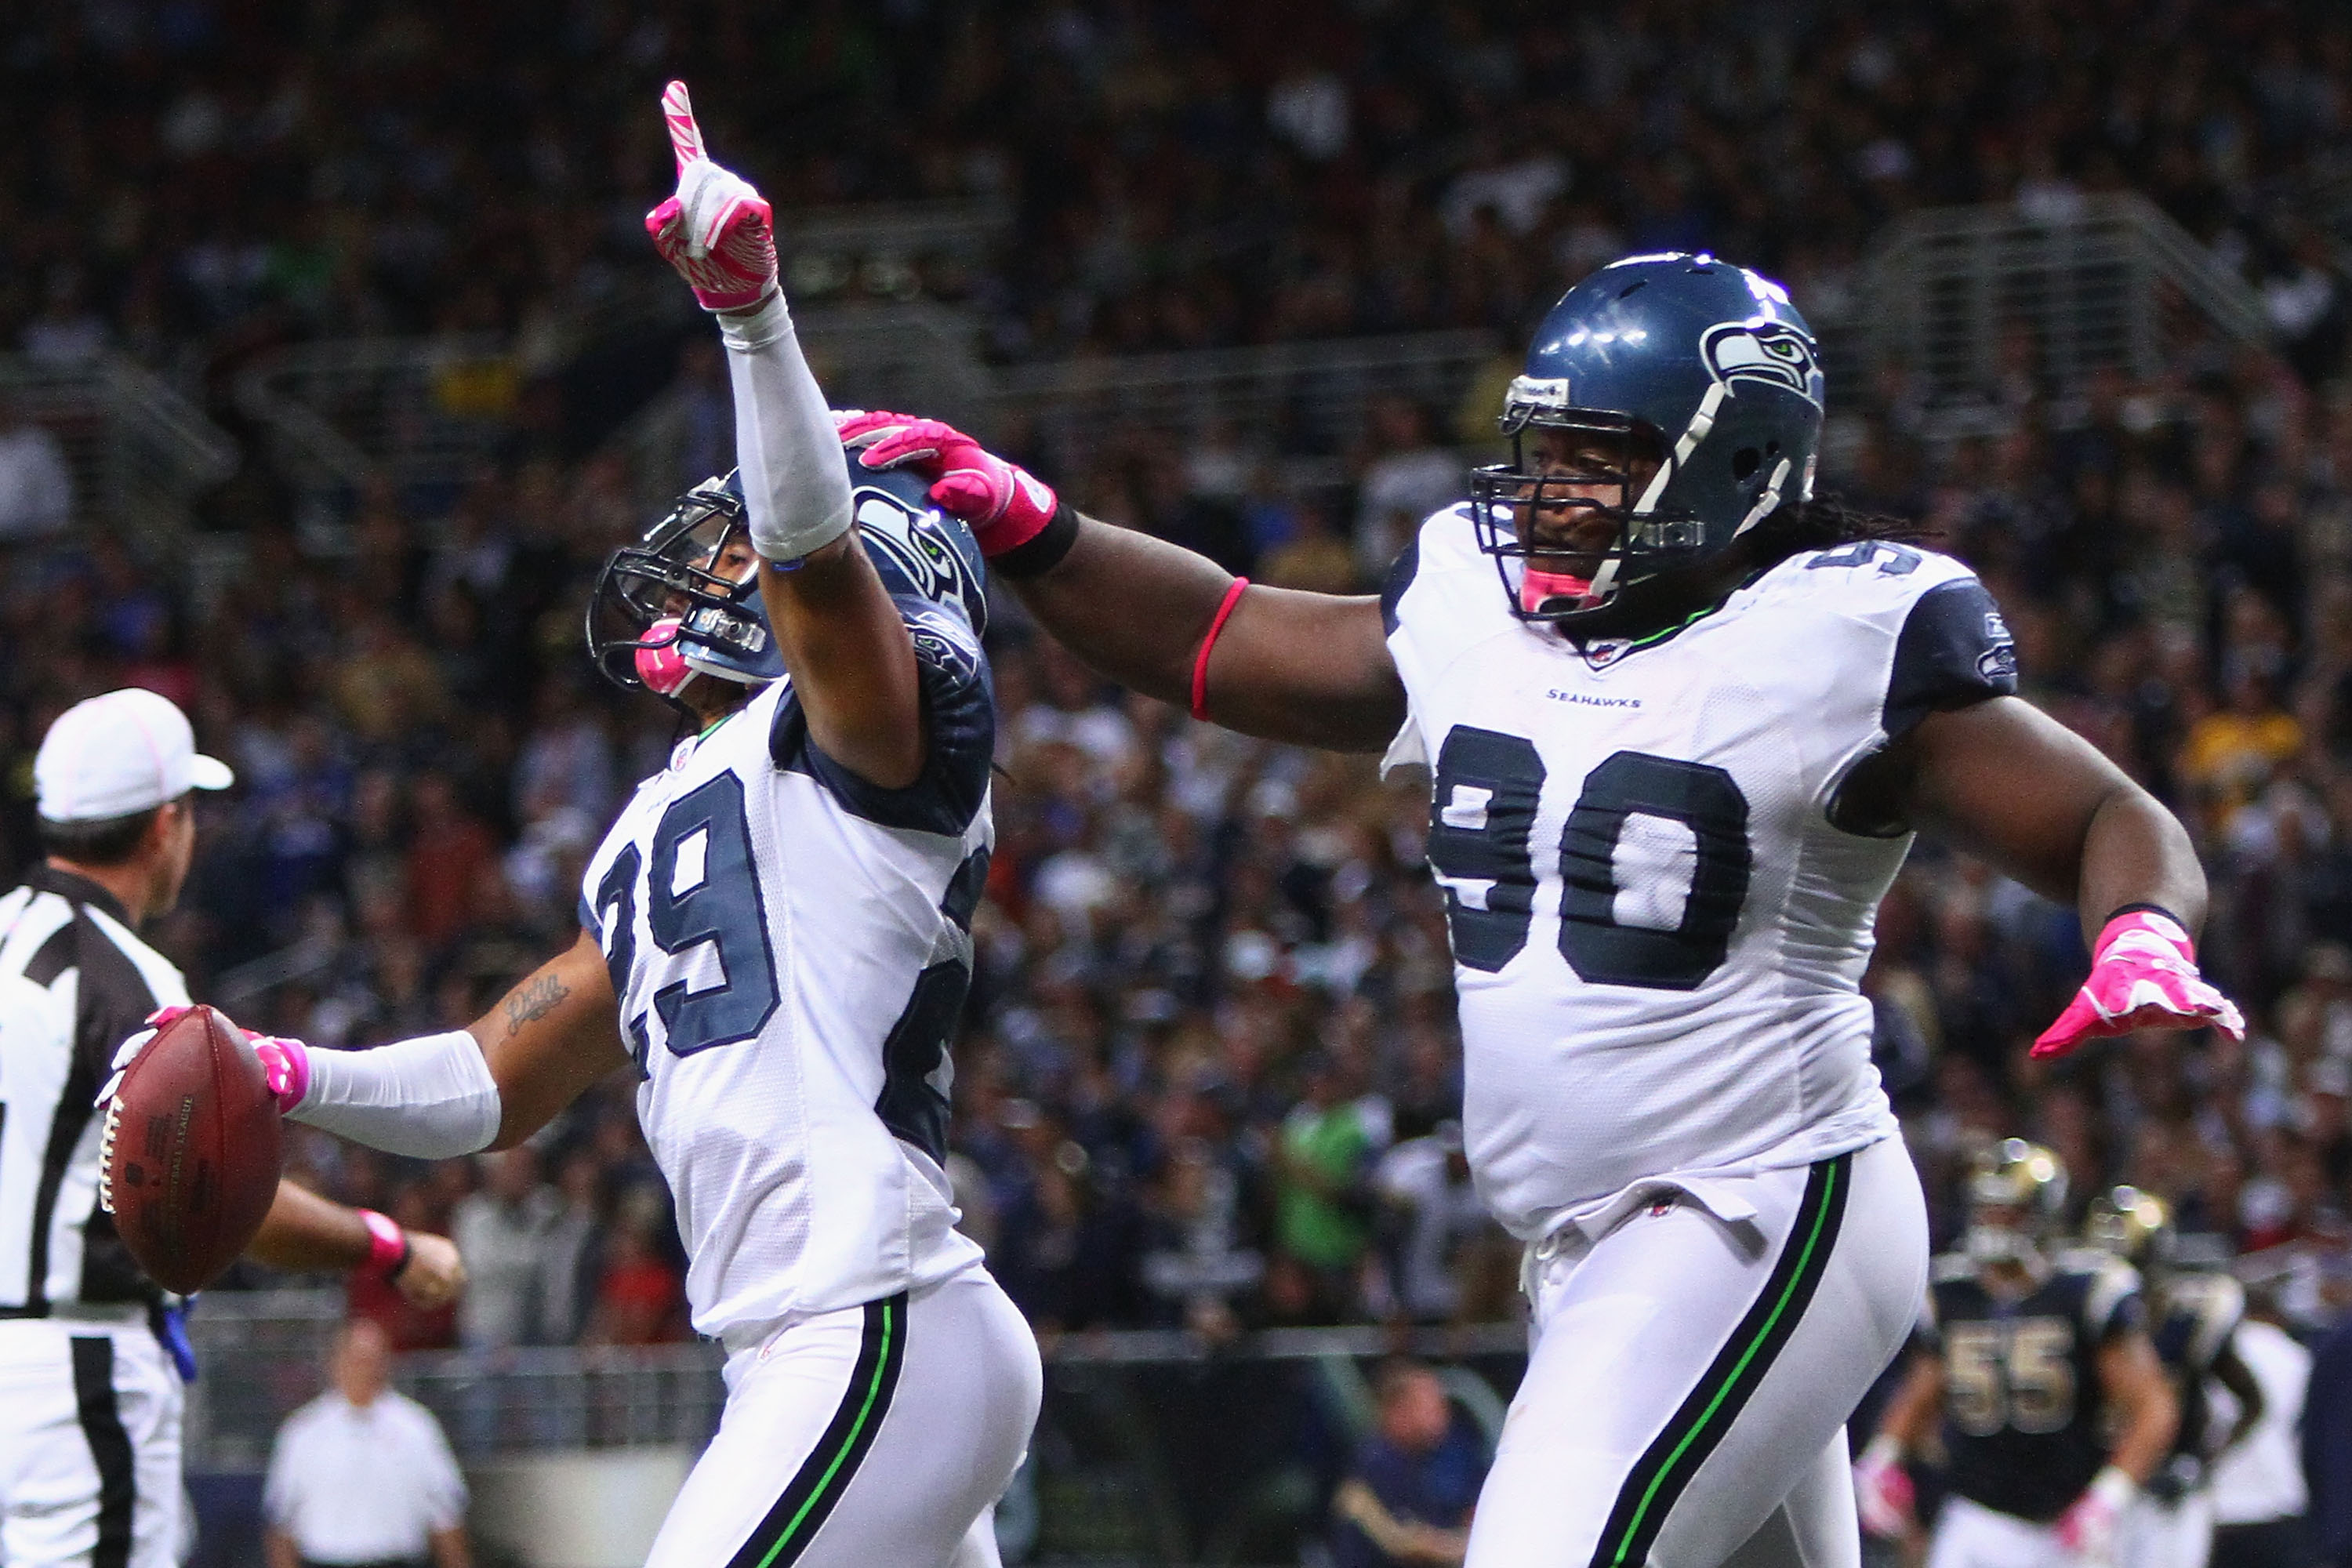 Earl Thomas (#29) celebrating with Colin Cole (#90)